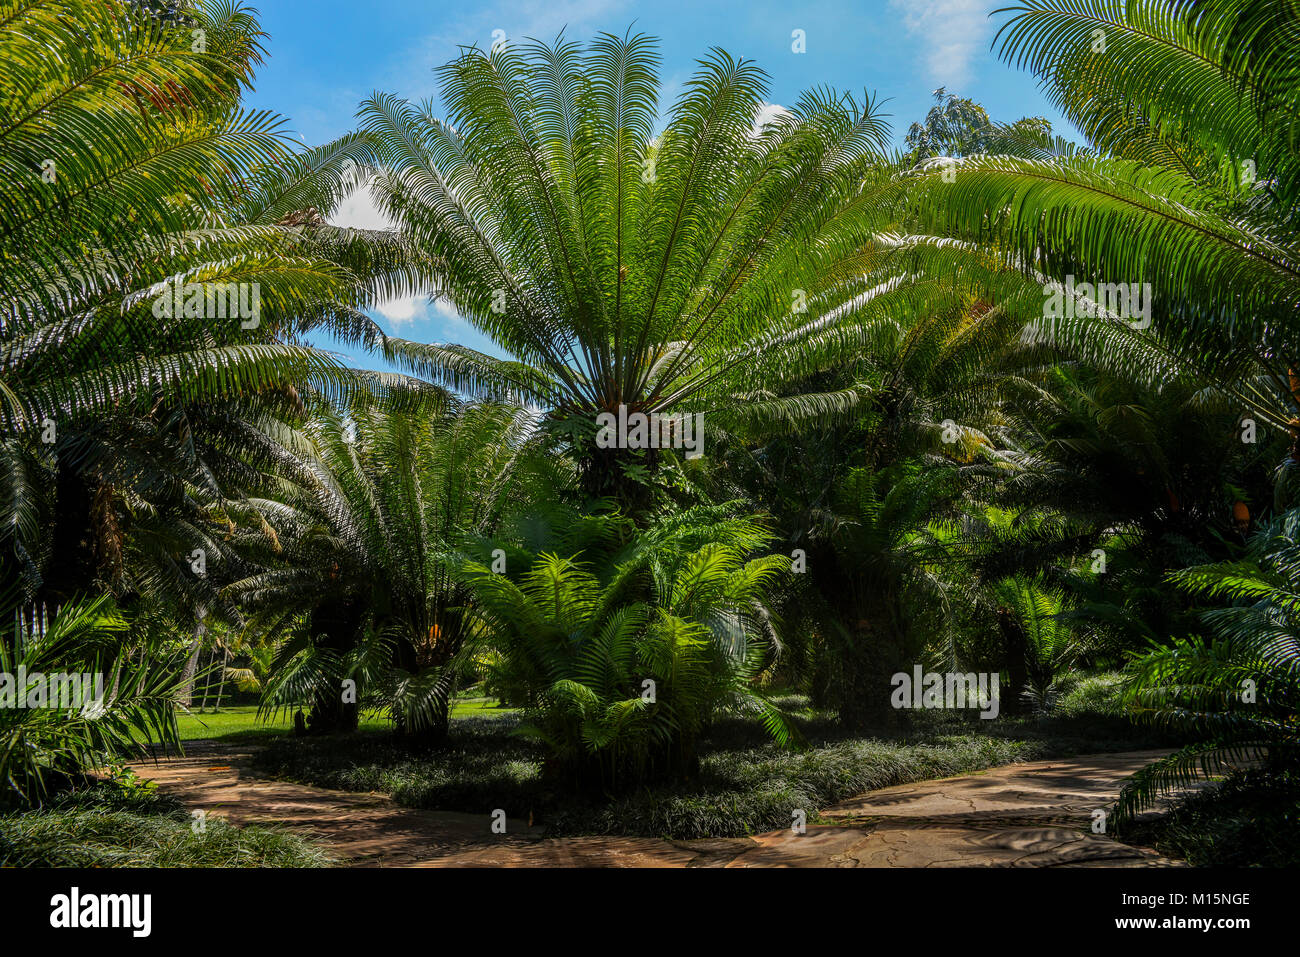 Palms grow like grasses, with sheathes that wrap around the stems or trunks then give rise to a leaf - captured - Stock Image